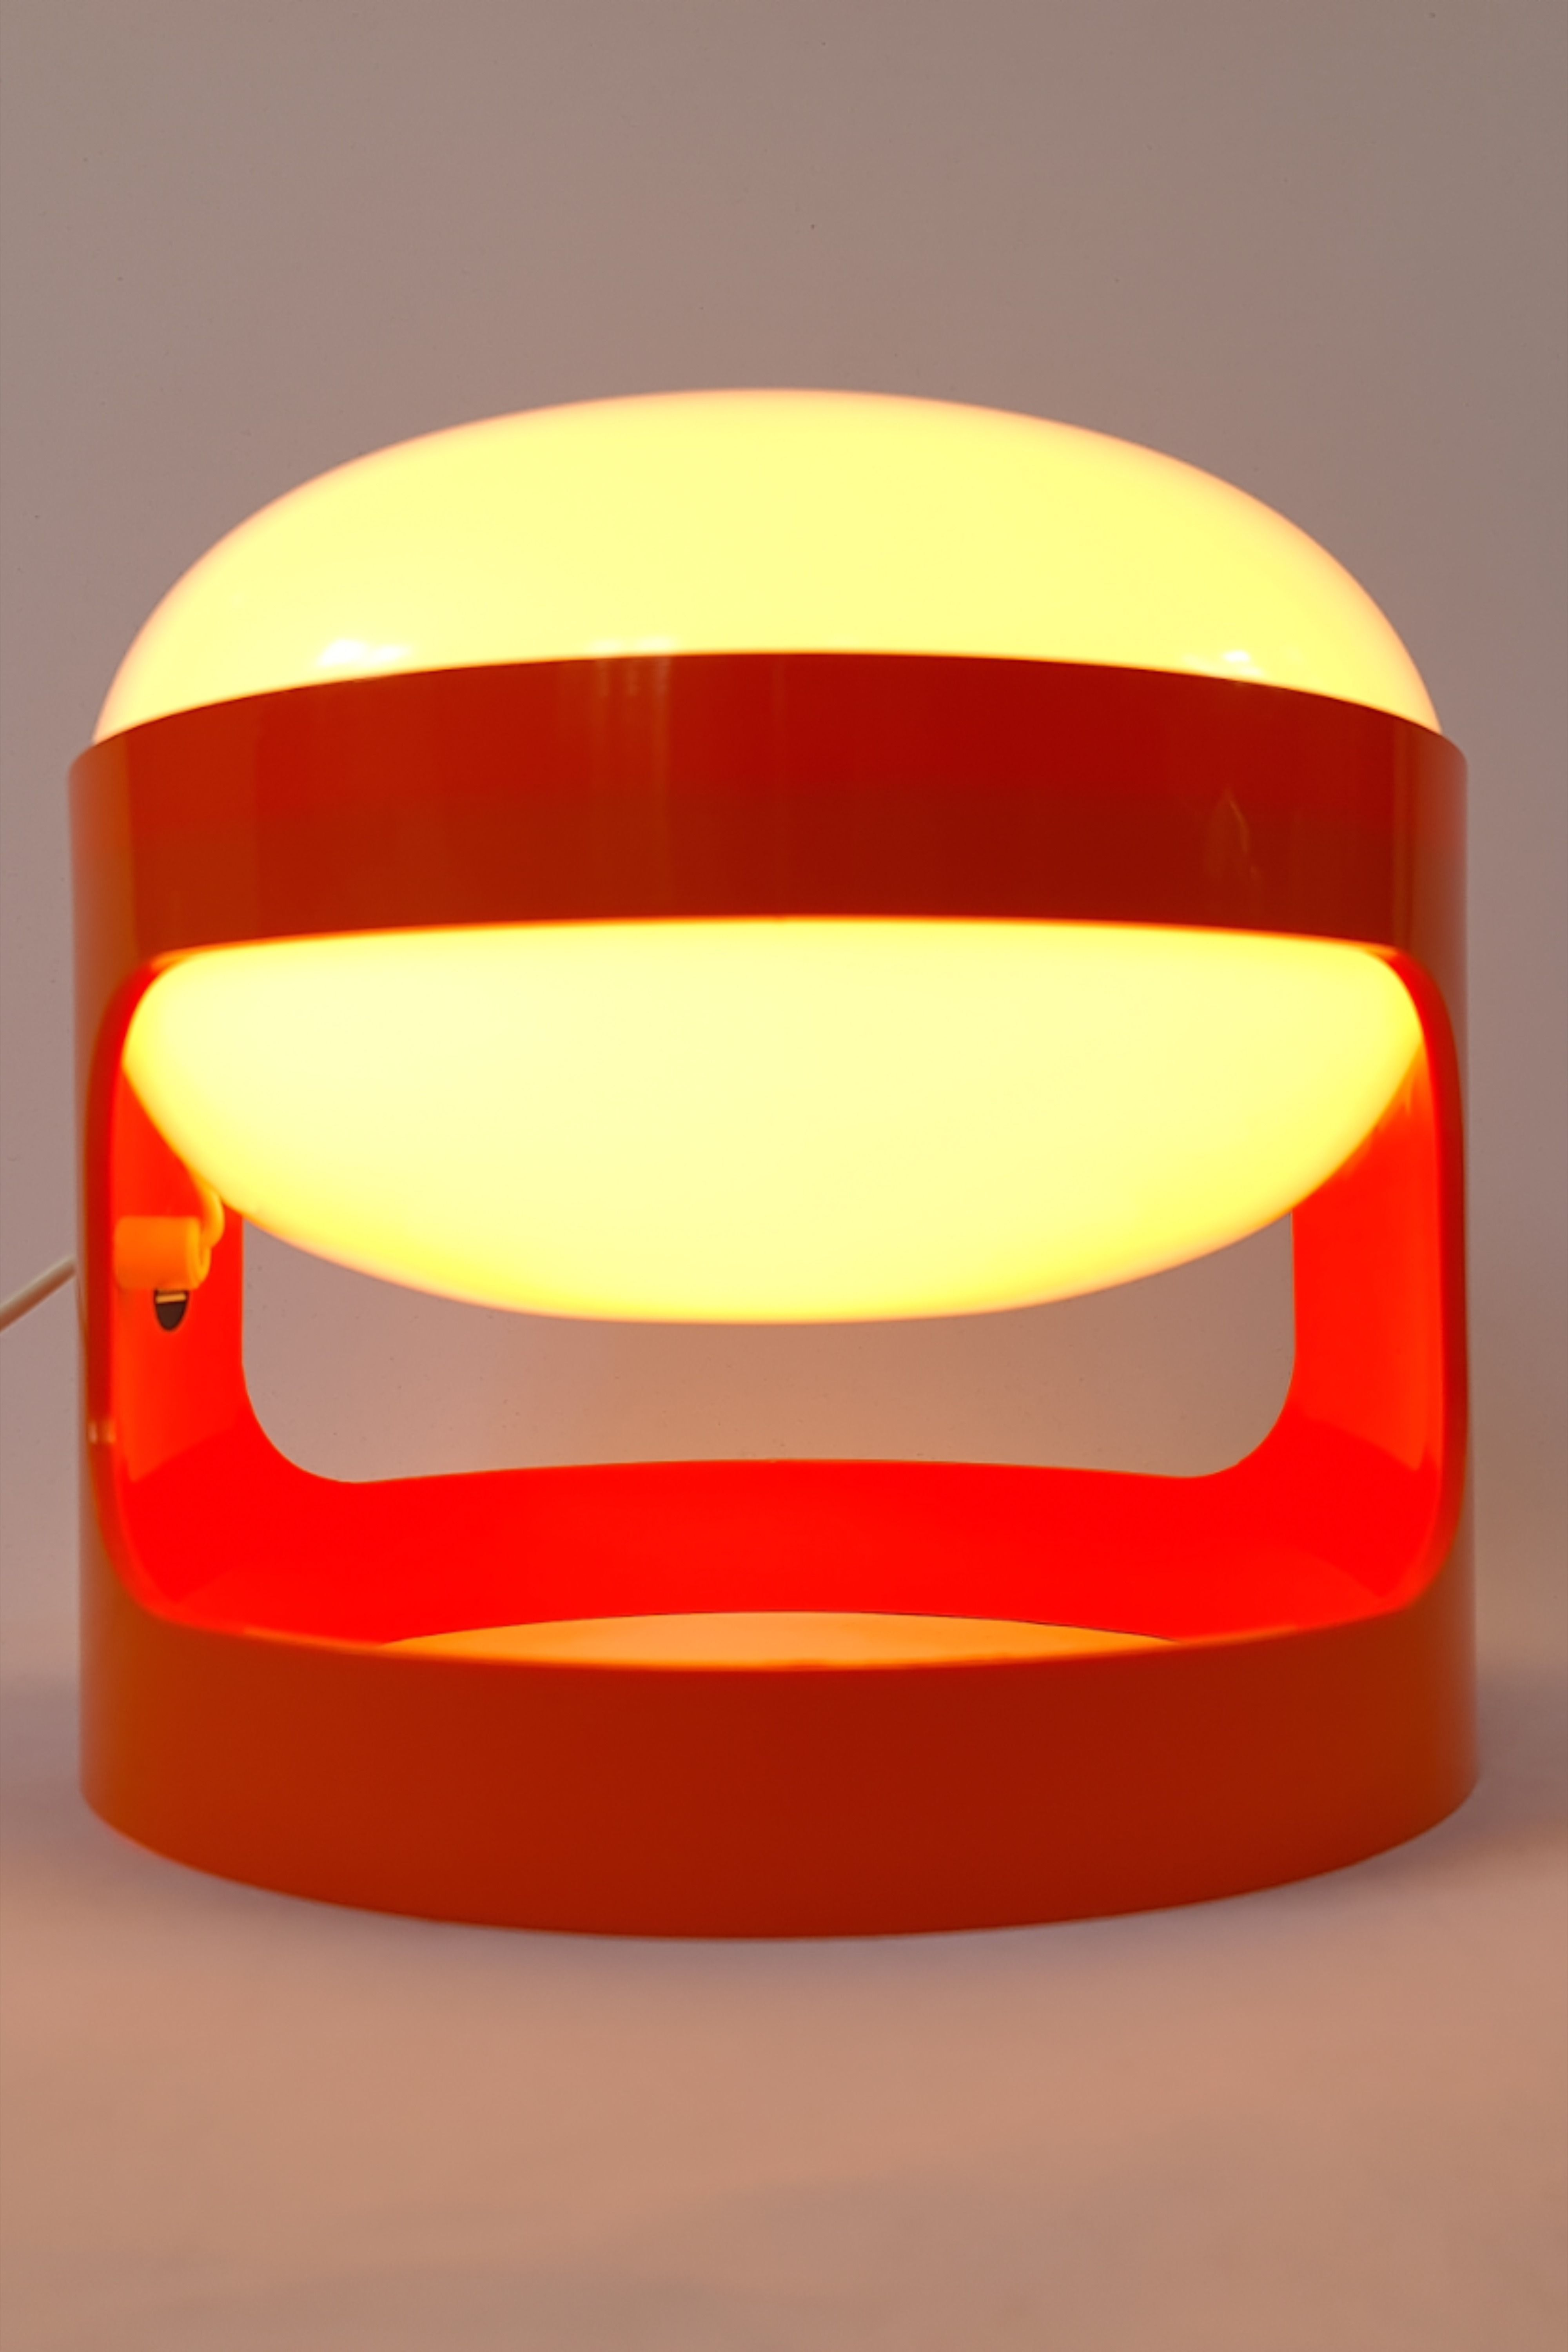 Space Age Table Lamp Kd27 Designed By Joe Colombo For Kartell Italy Made By Husqvarna Sweden 1960s Midcentury In 2020 Lamp Table Lamp Kartell